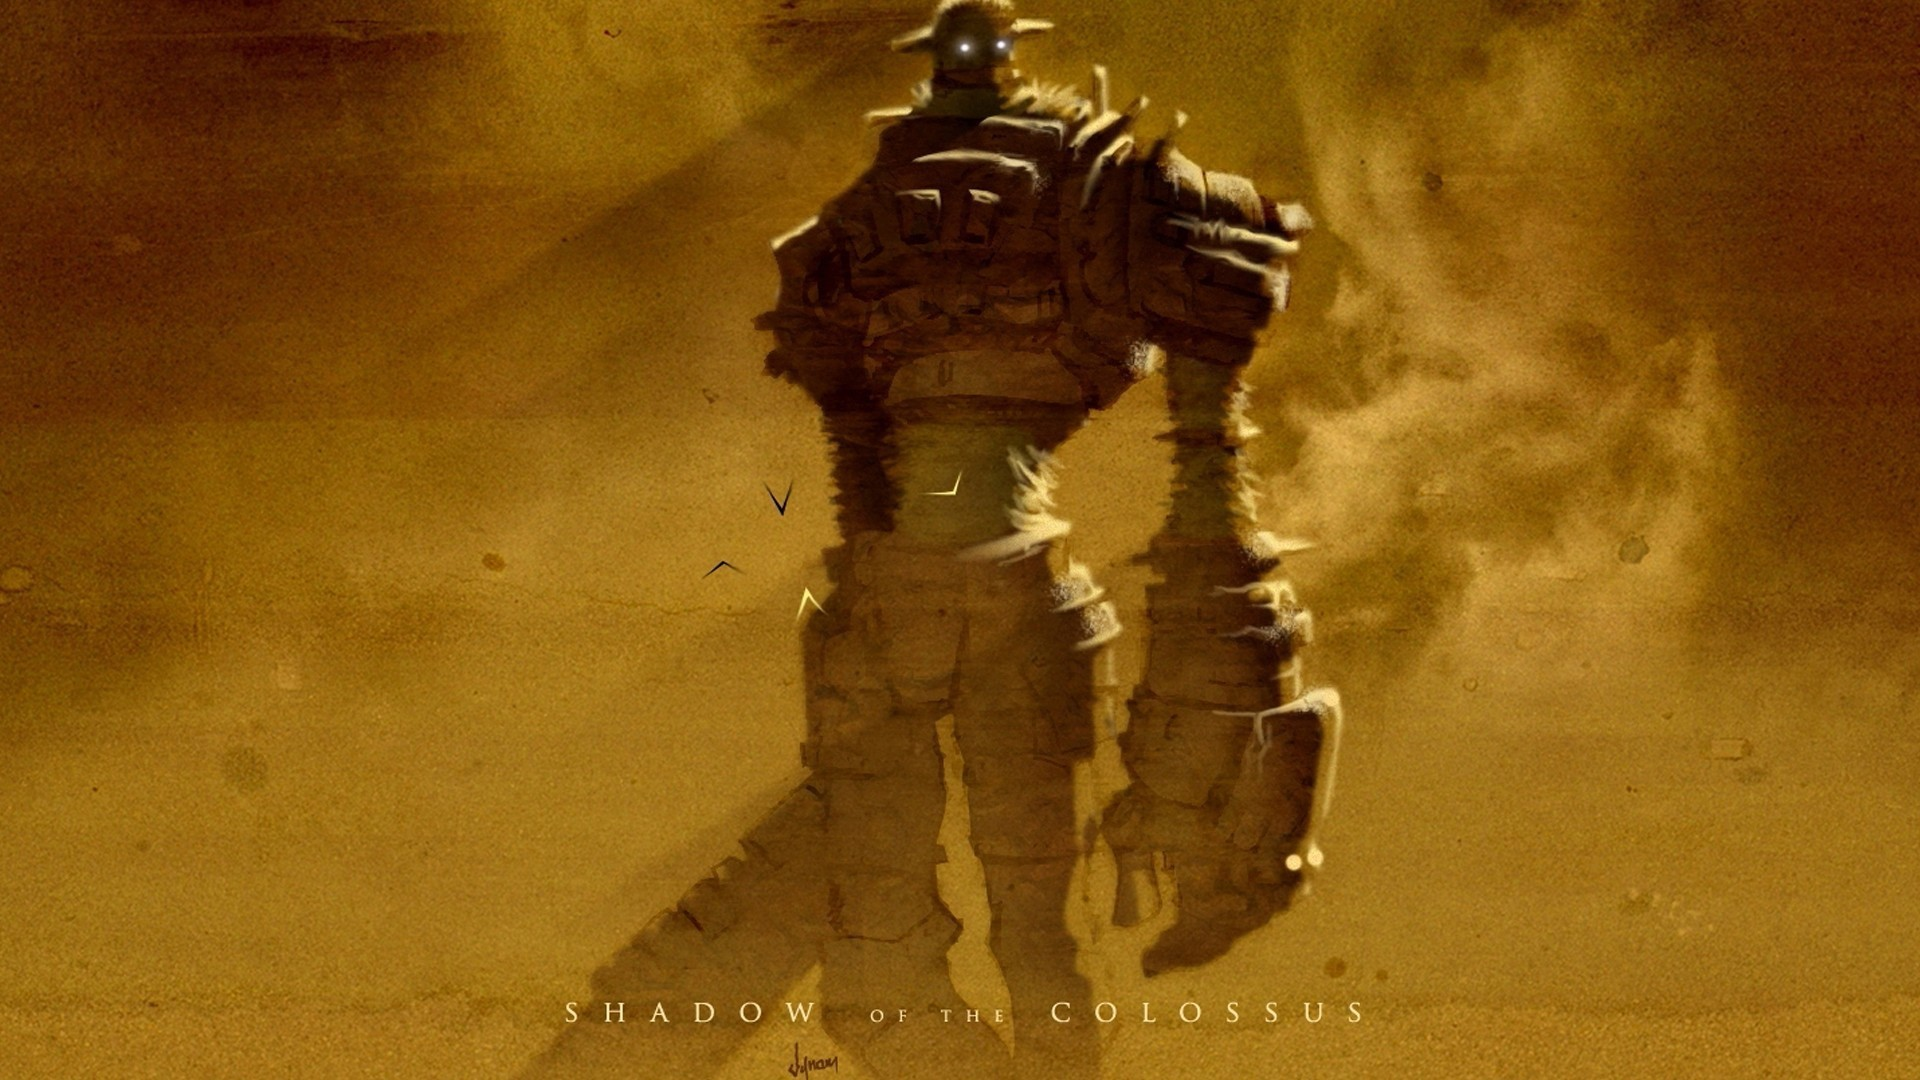 The colossus in the game Shadow of the Colossus